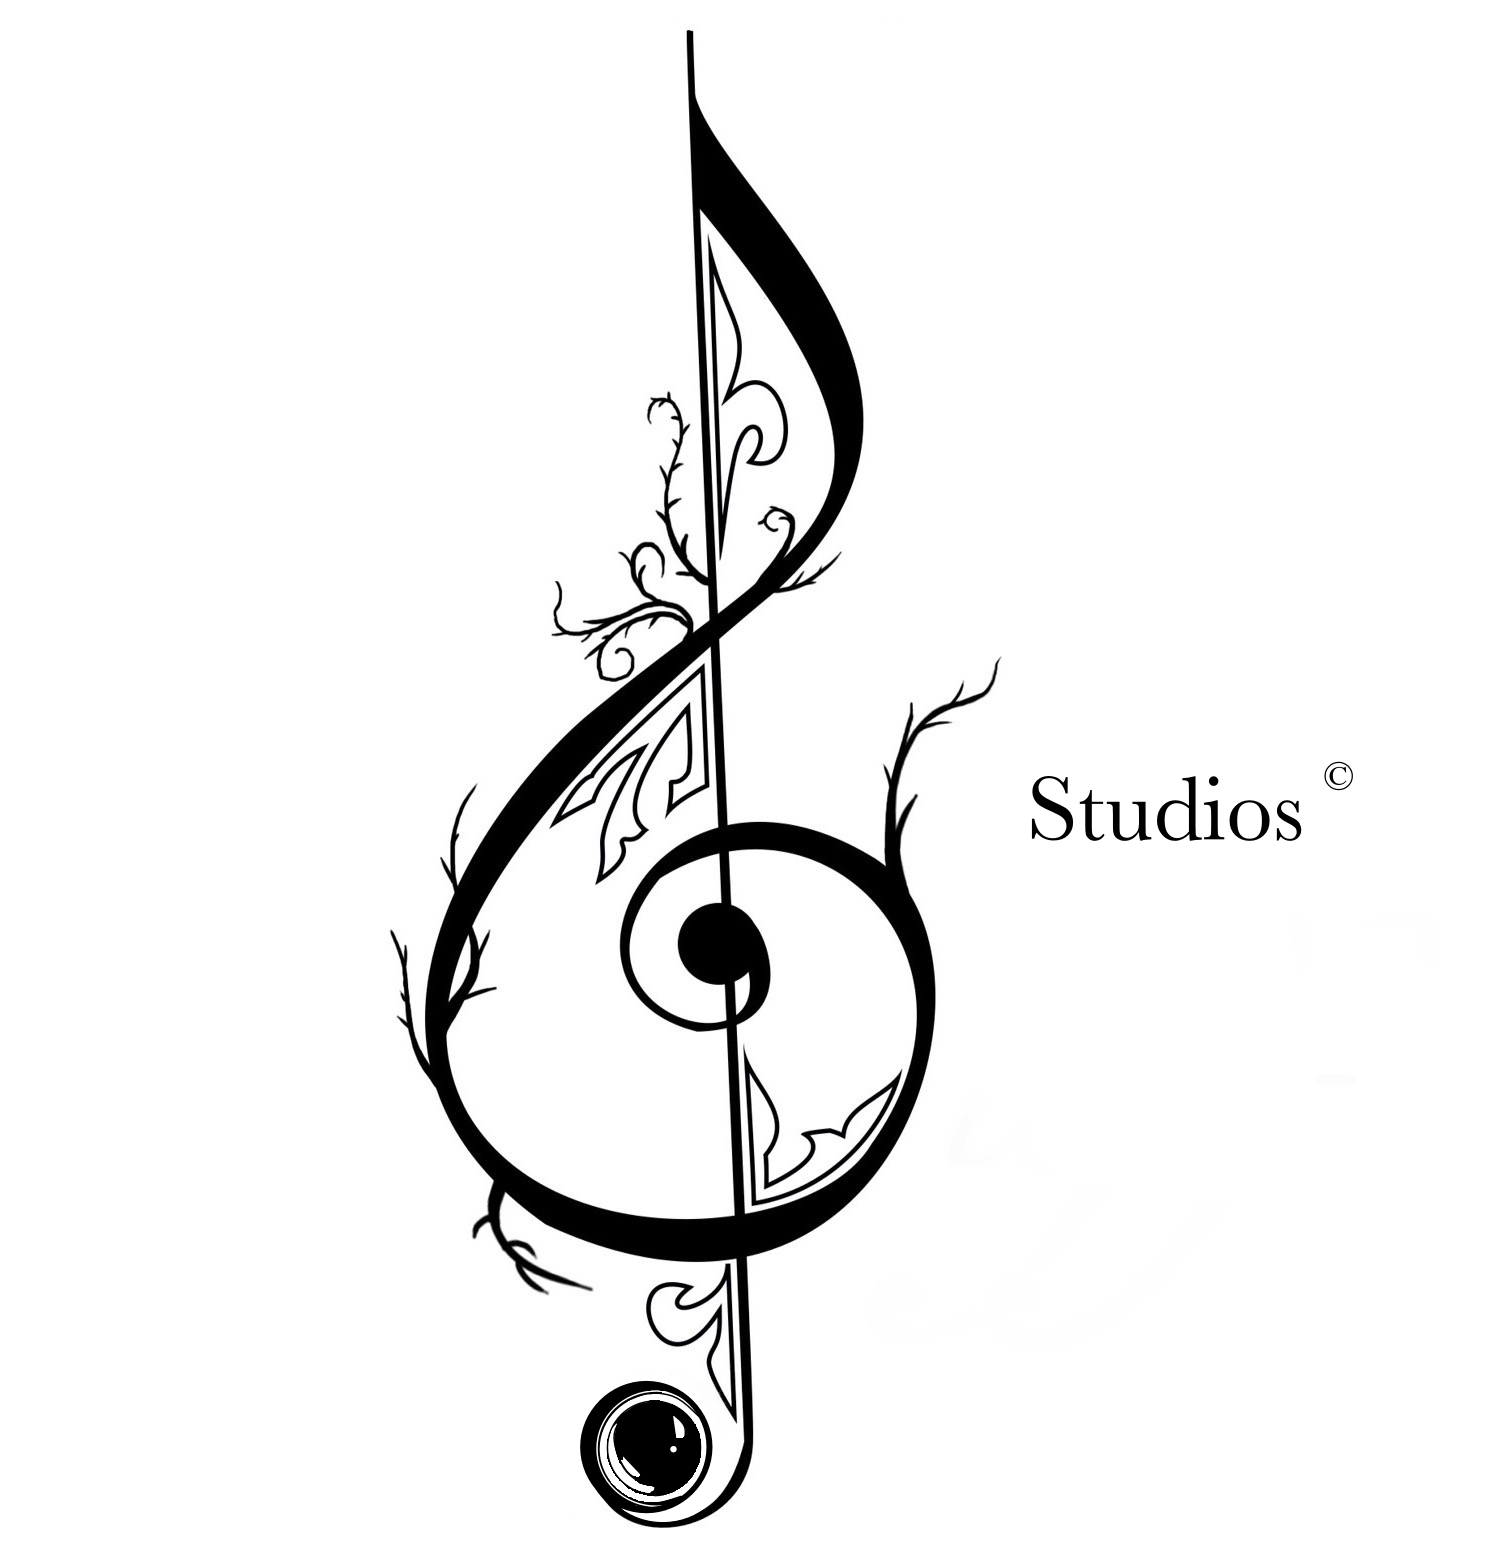 Sieff studios.com - Creative media production.Music education resource.